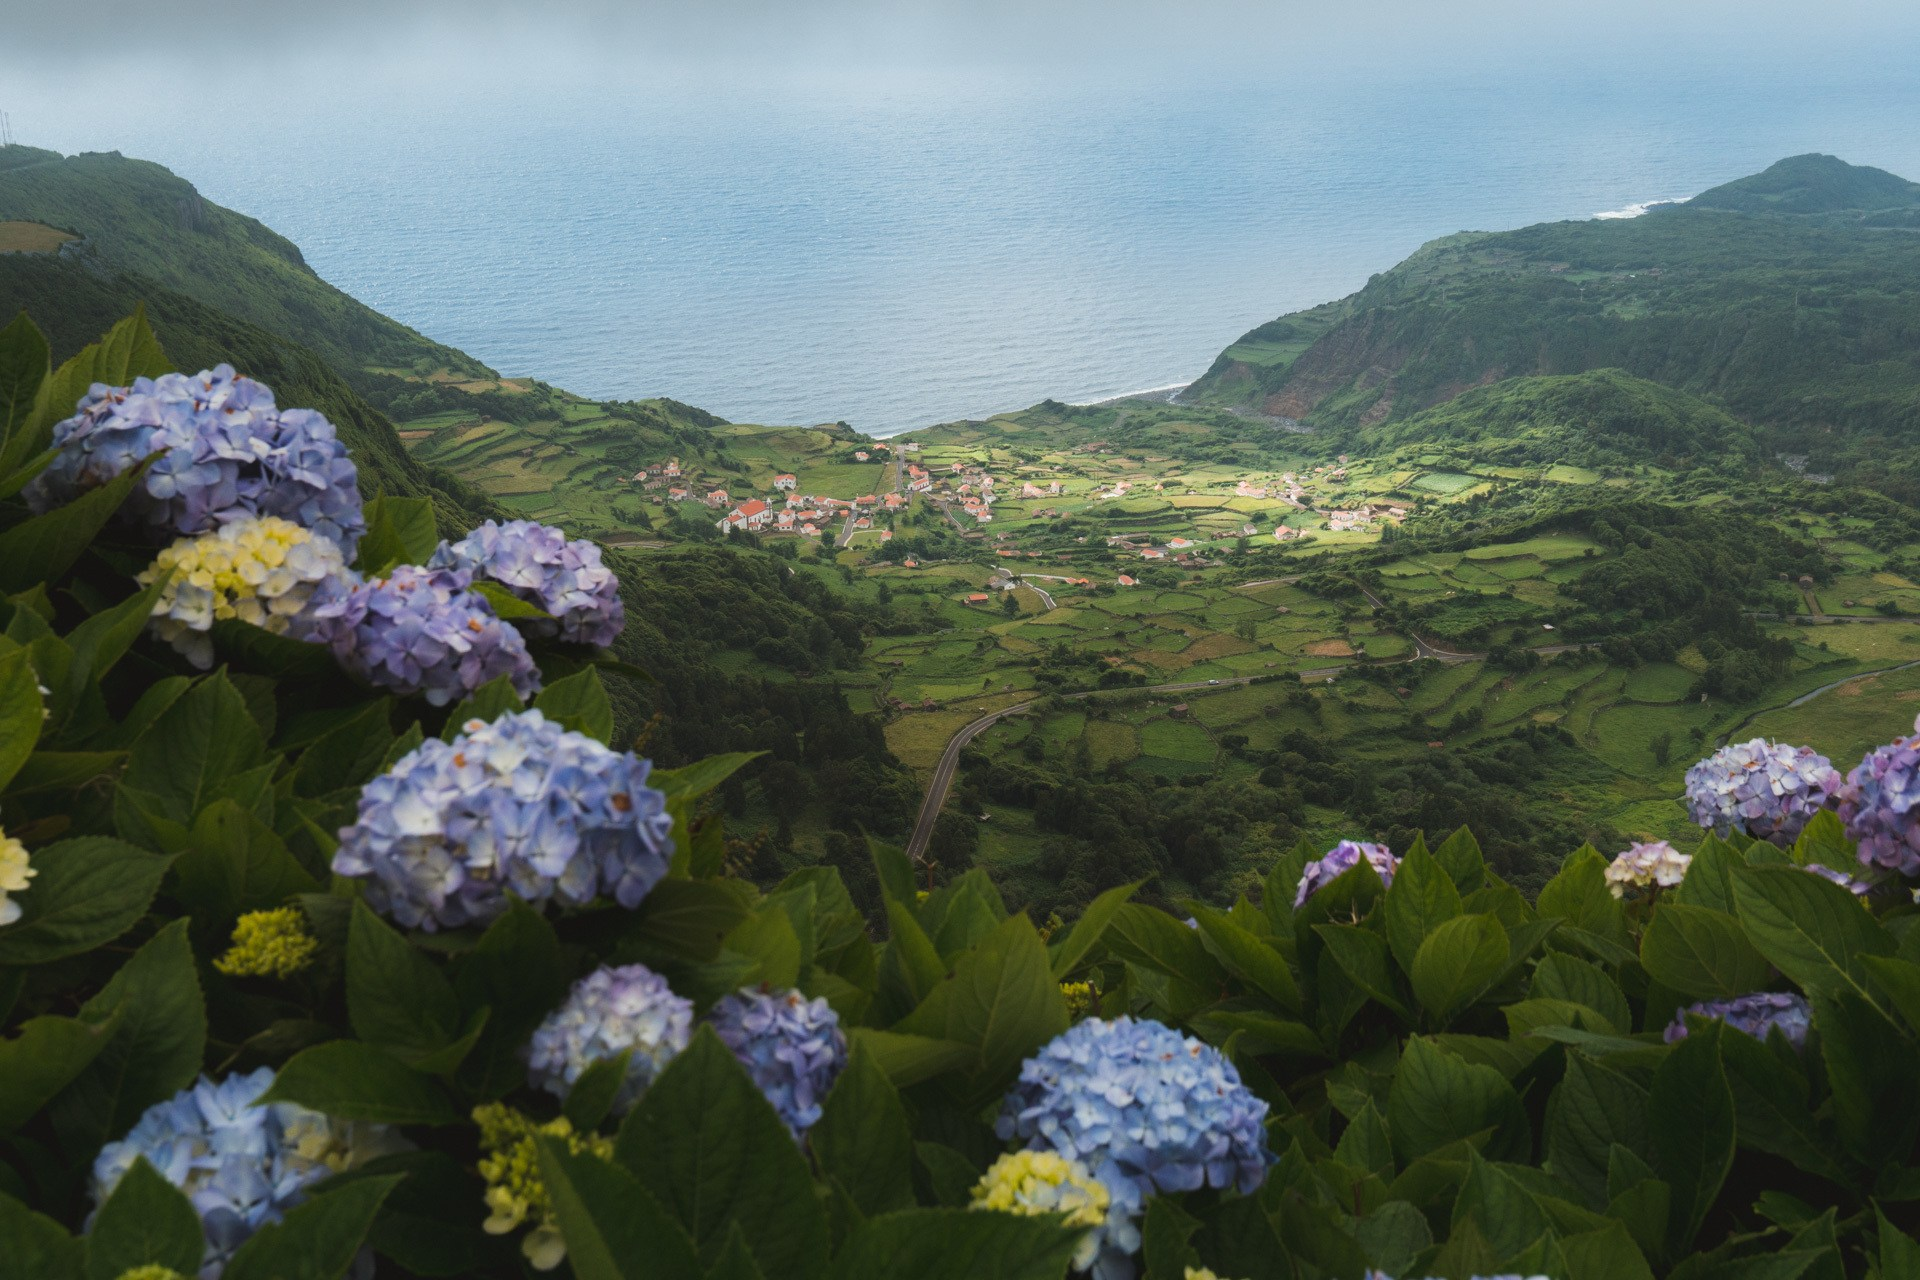 views while traveling on the Azores